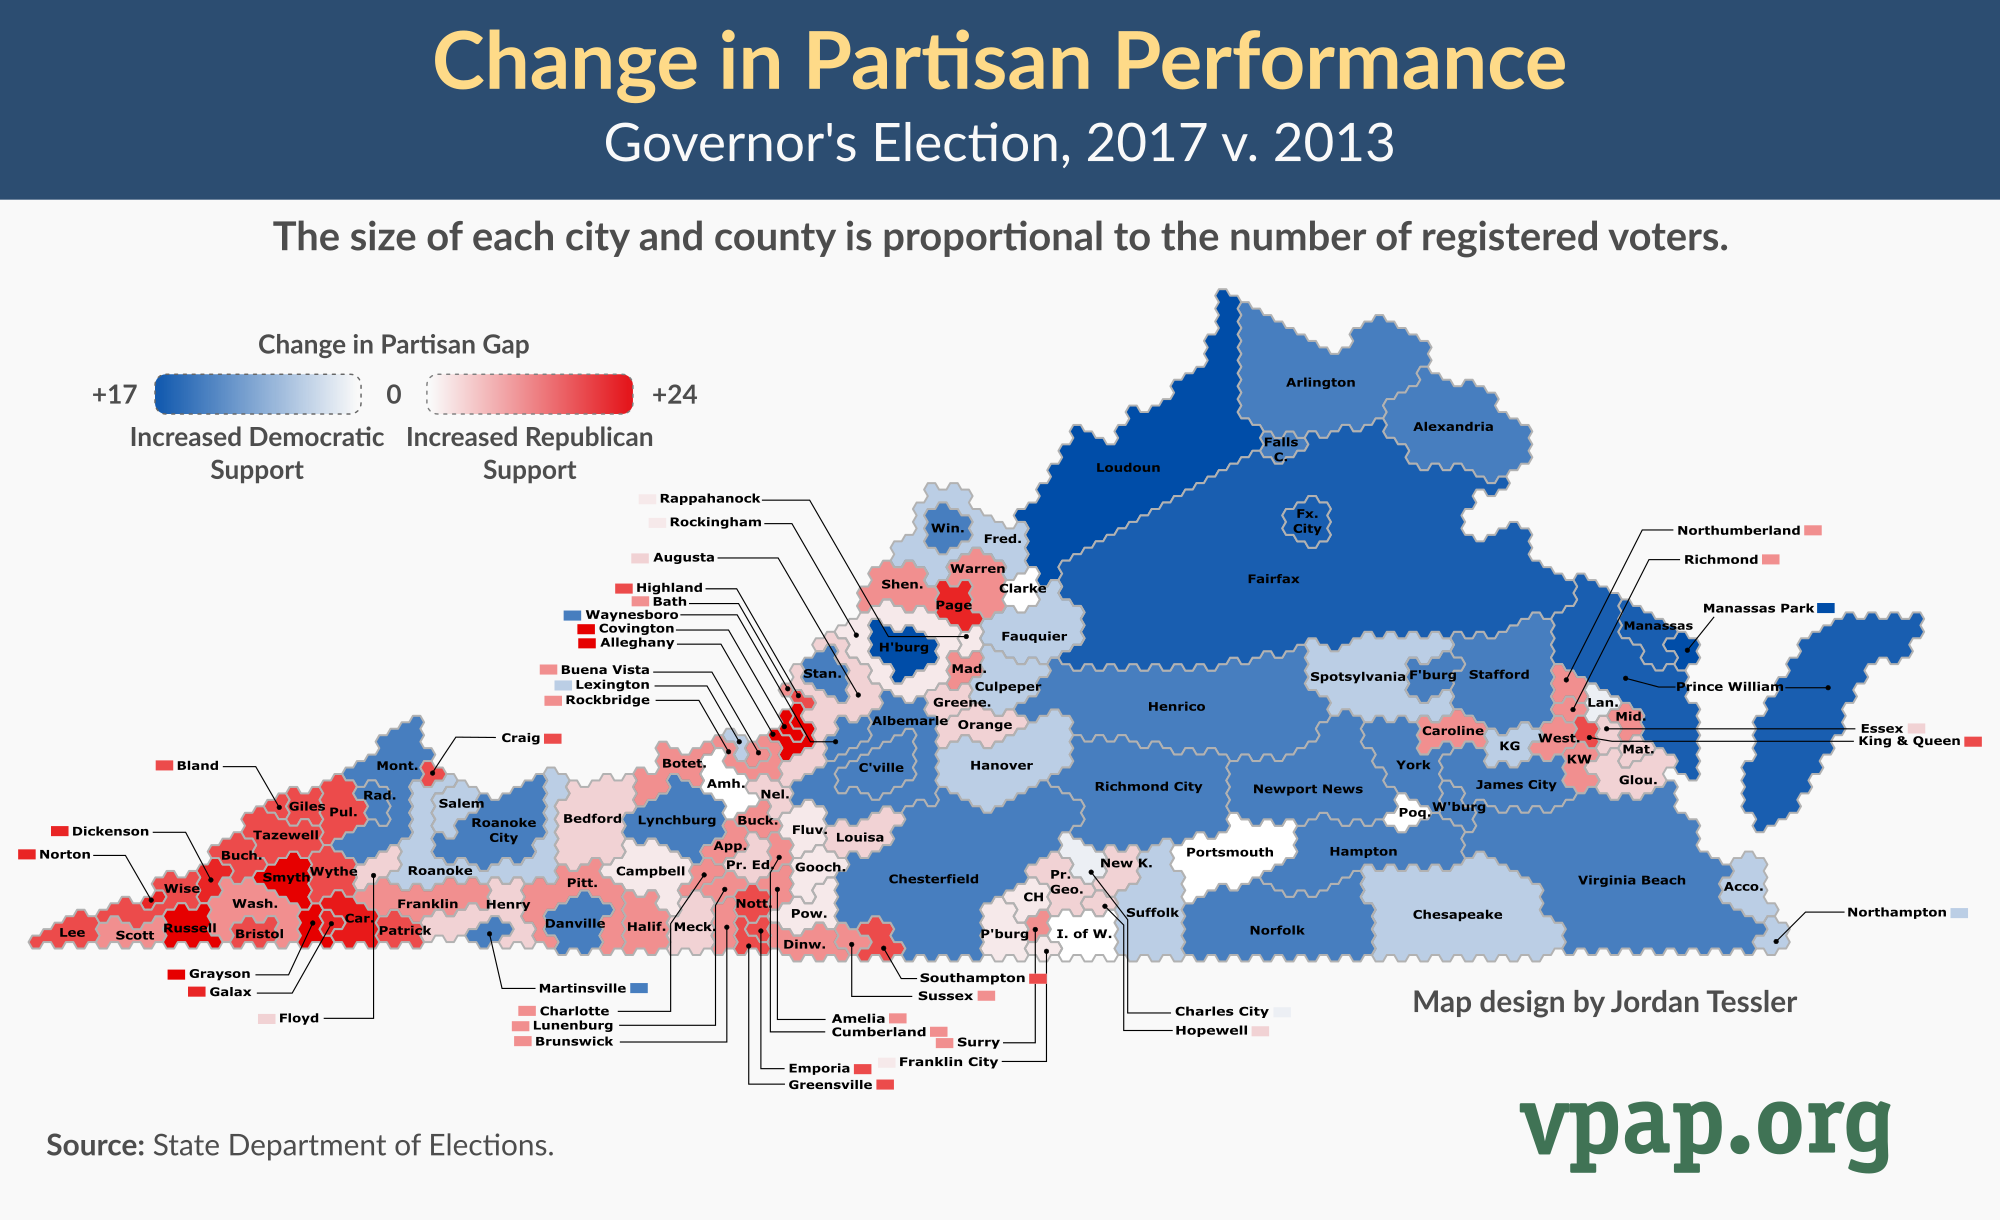 Visualization: Change in Partisan Performance, Governor's Election, 2017 v 2013